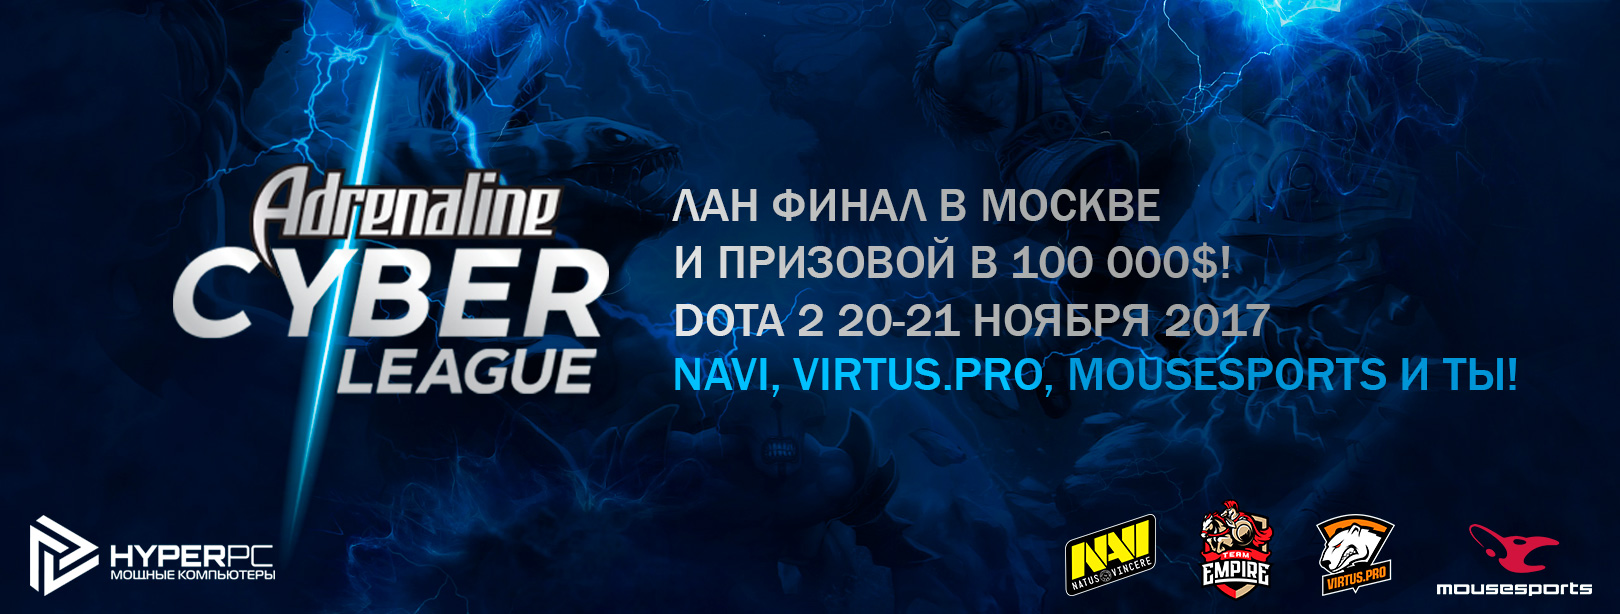 main adrenalin cyber league 2017